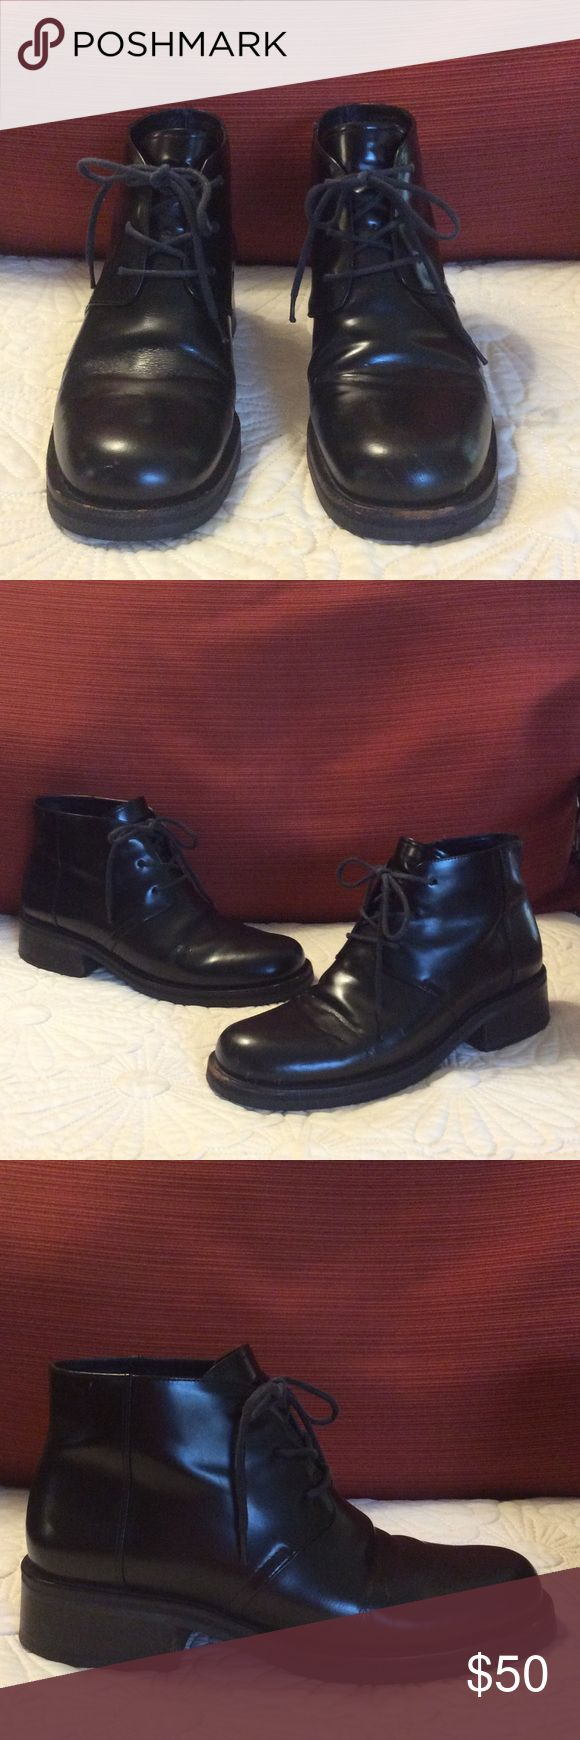 Vintage Cole Haan Leather Lace Up Ankle Boots Previously owned Cole Haan Boots Size 6.5 B still in good condition. Has scuff marks near the toe area. Bottom soles are in very good condition. Cole Haan Shoes Ankle Boots & Booties